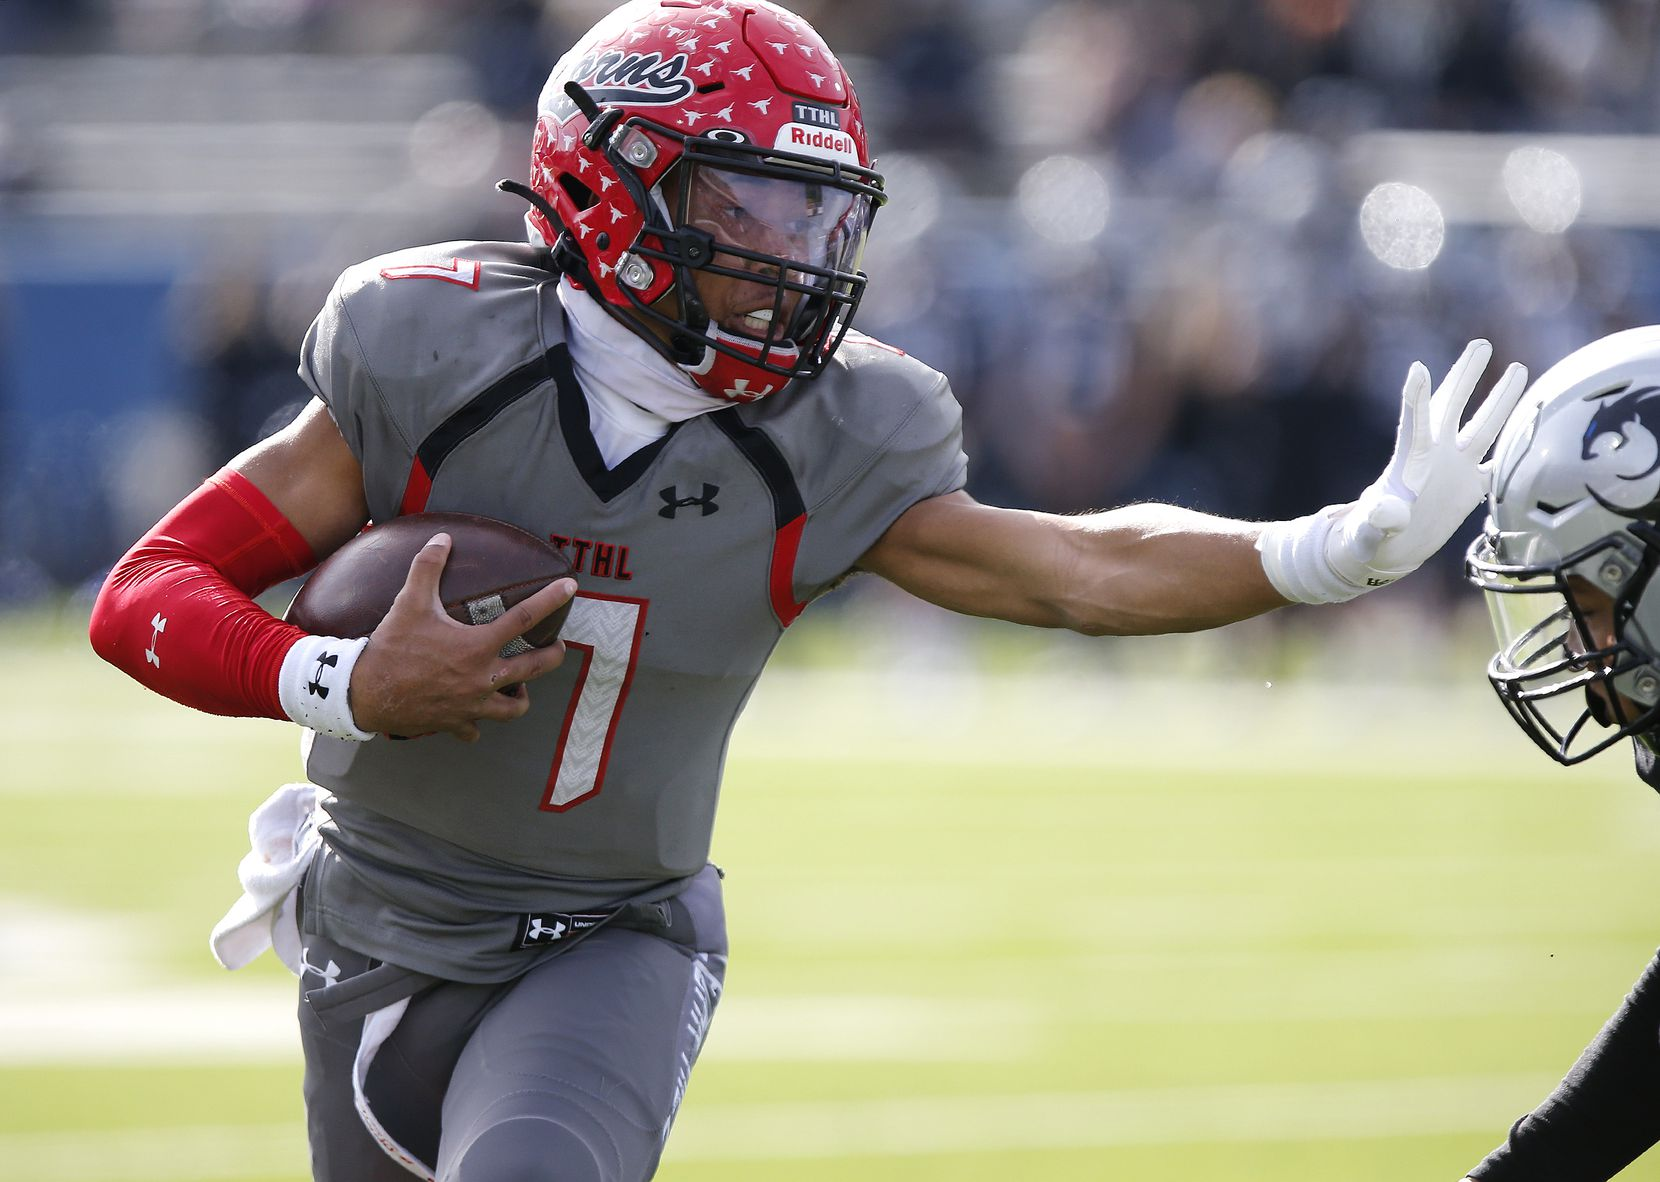 Cedar Hill quarterback Kaidon Salter (7) uses a stiff arm on a run during the first half of a game against Denton Guyer in a Class 6A Div. II state semifinal at McKinney ISD Stadium in McKinney on Saturday, Jan. 9, 2021.